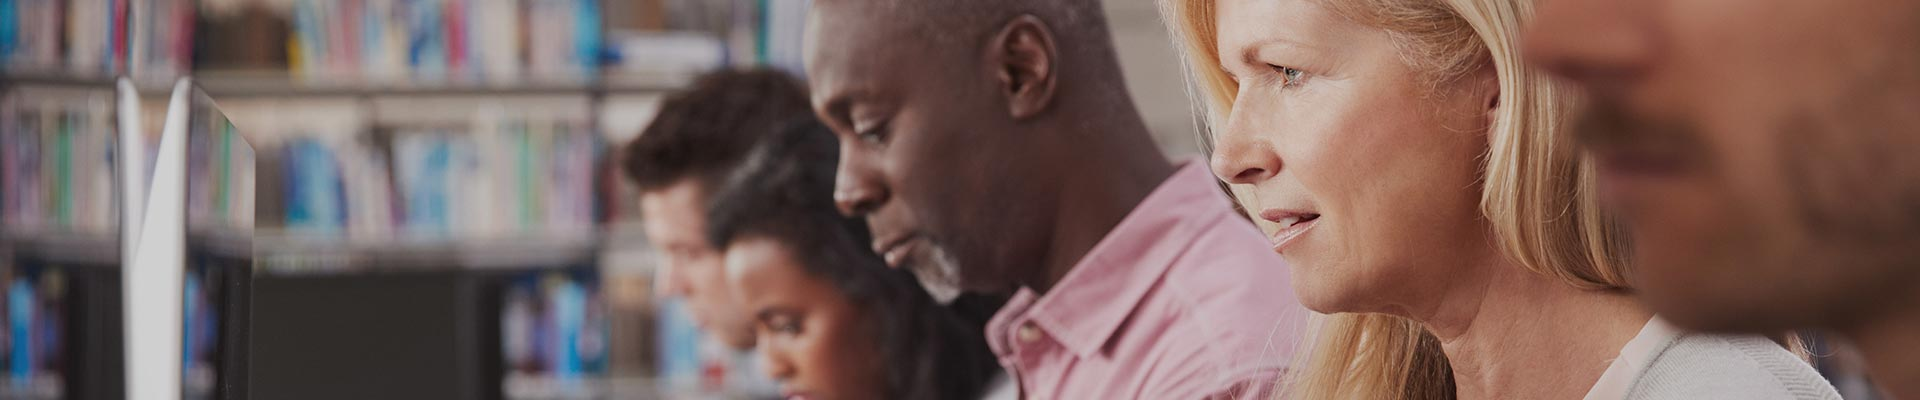 Westminster Adult Education Service (WAES)